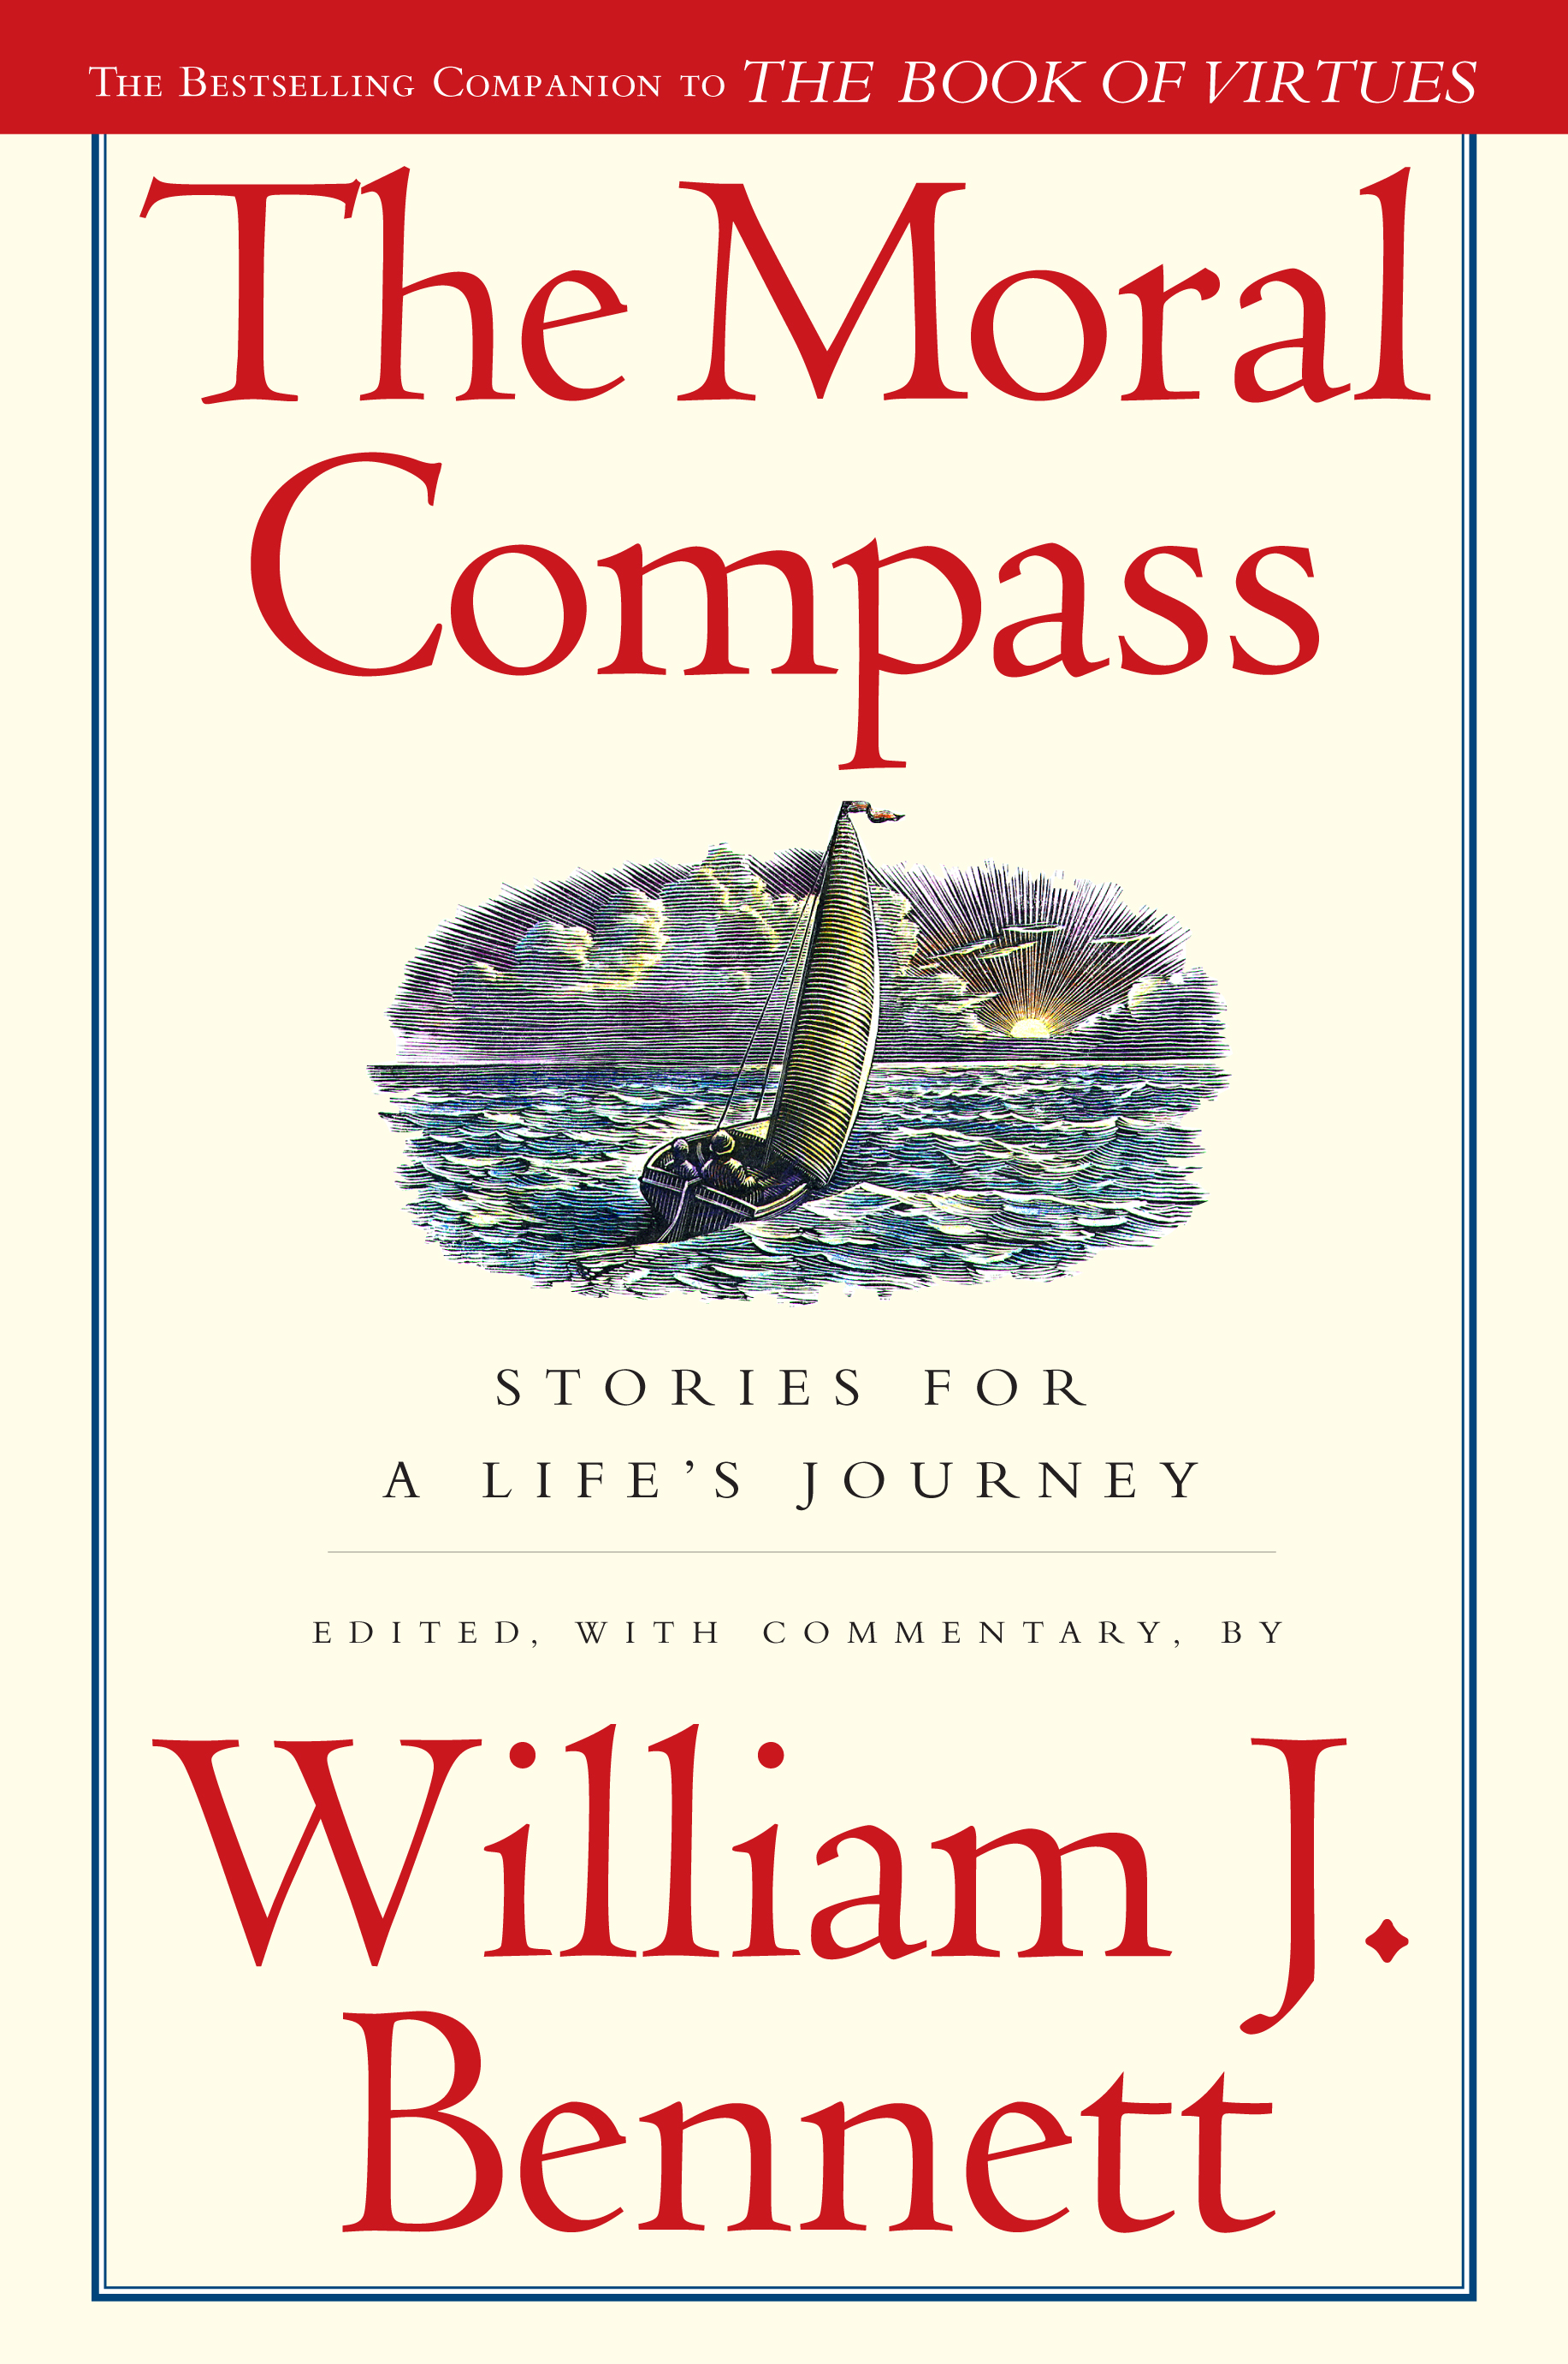 william j. bennett essay Marriage in william congreve's way of the world essay length: 1790 words (51 double-spaced pages) rating: powerful essays  william j bennett and andrew .